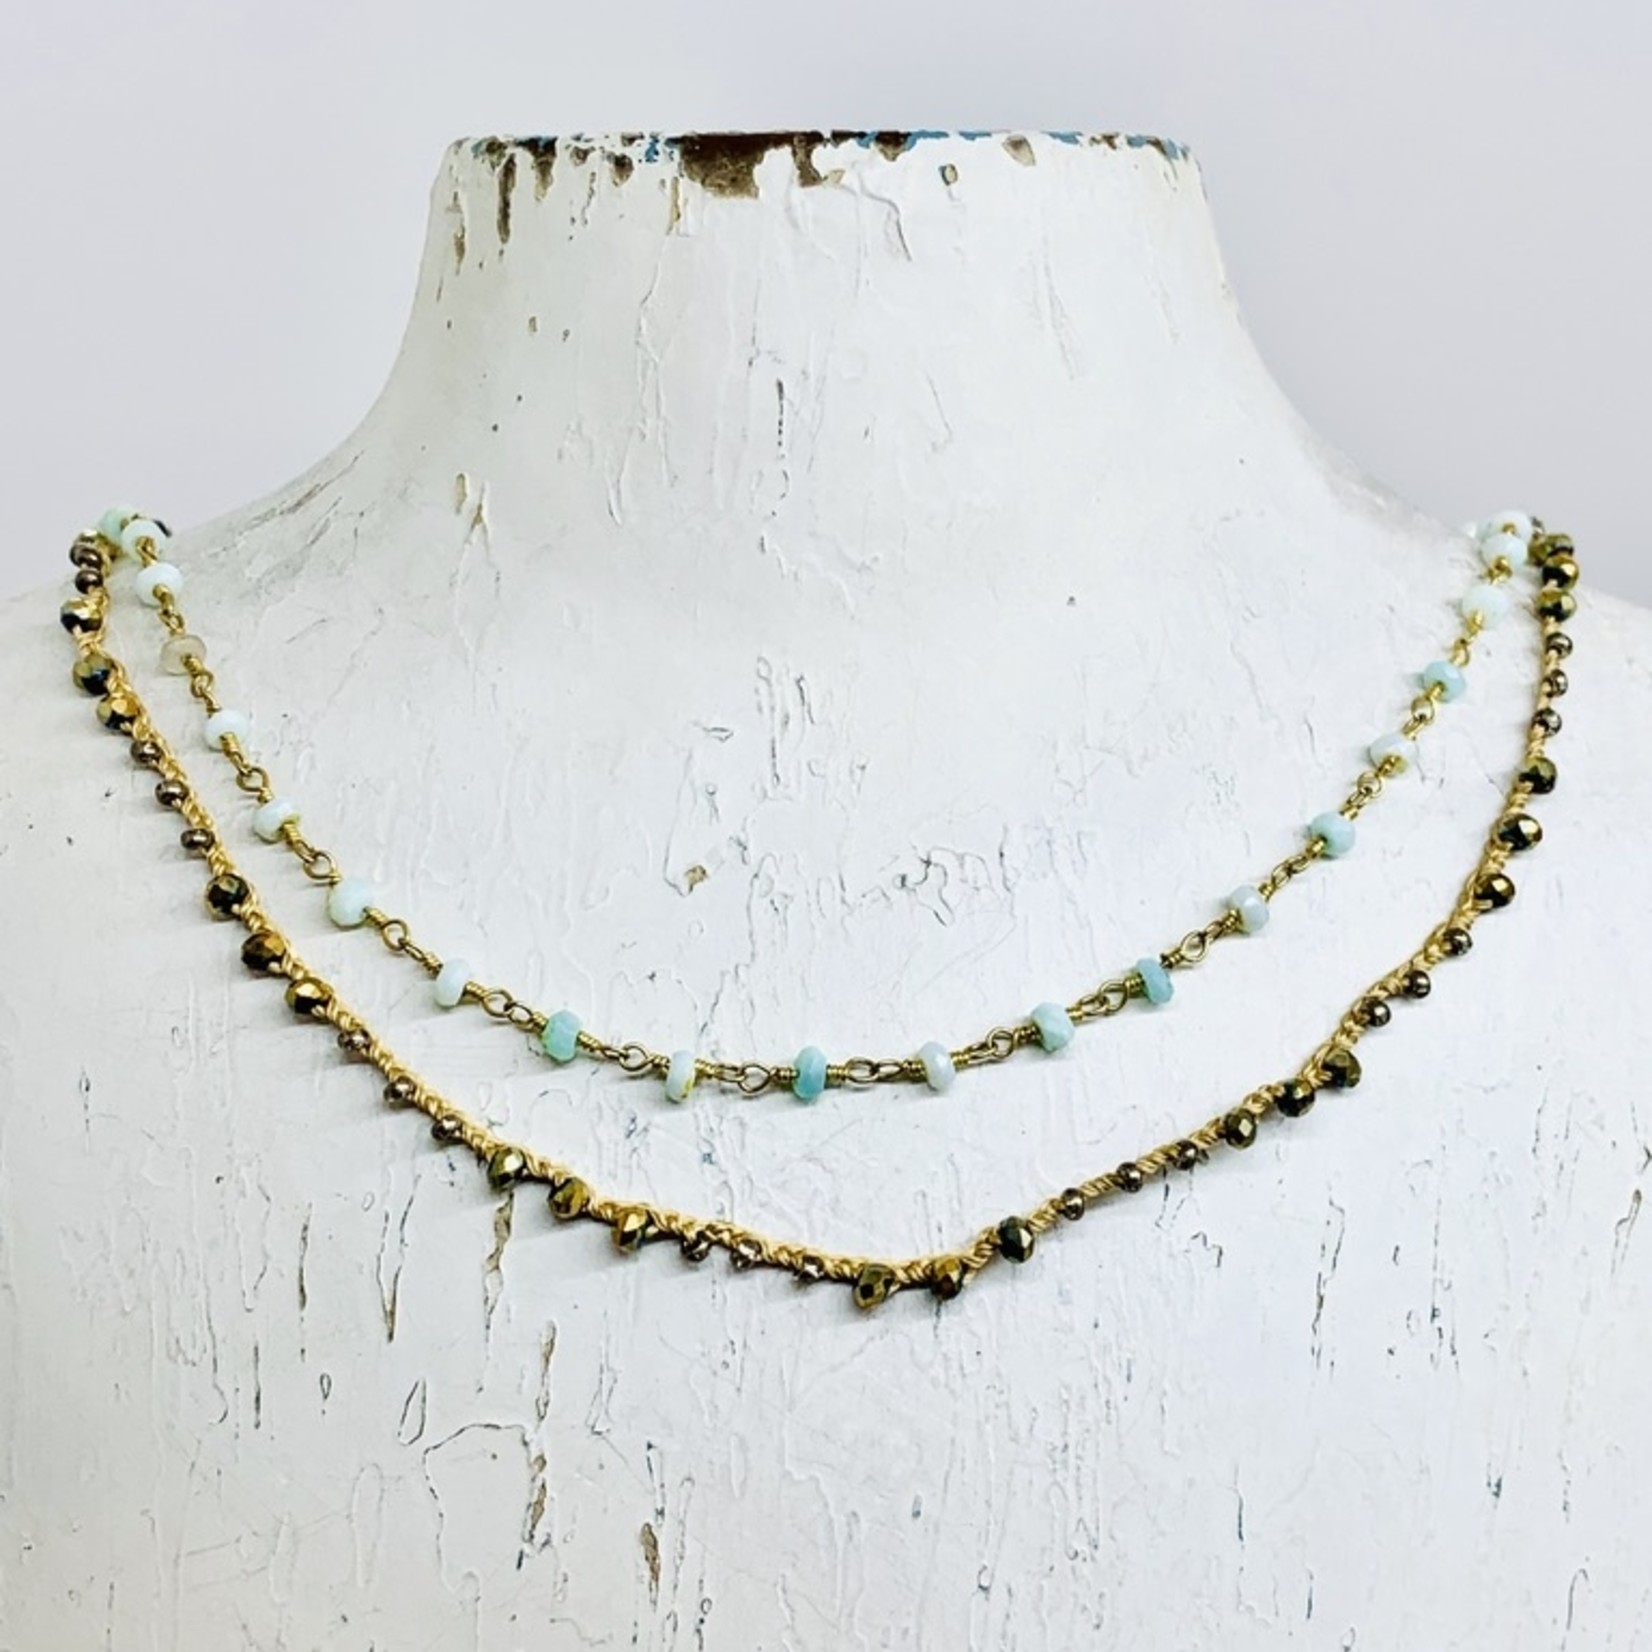 Native Gems RITUAL peruvian opal necklace | Double strands of 14k gold vermeil, silk, cz